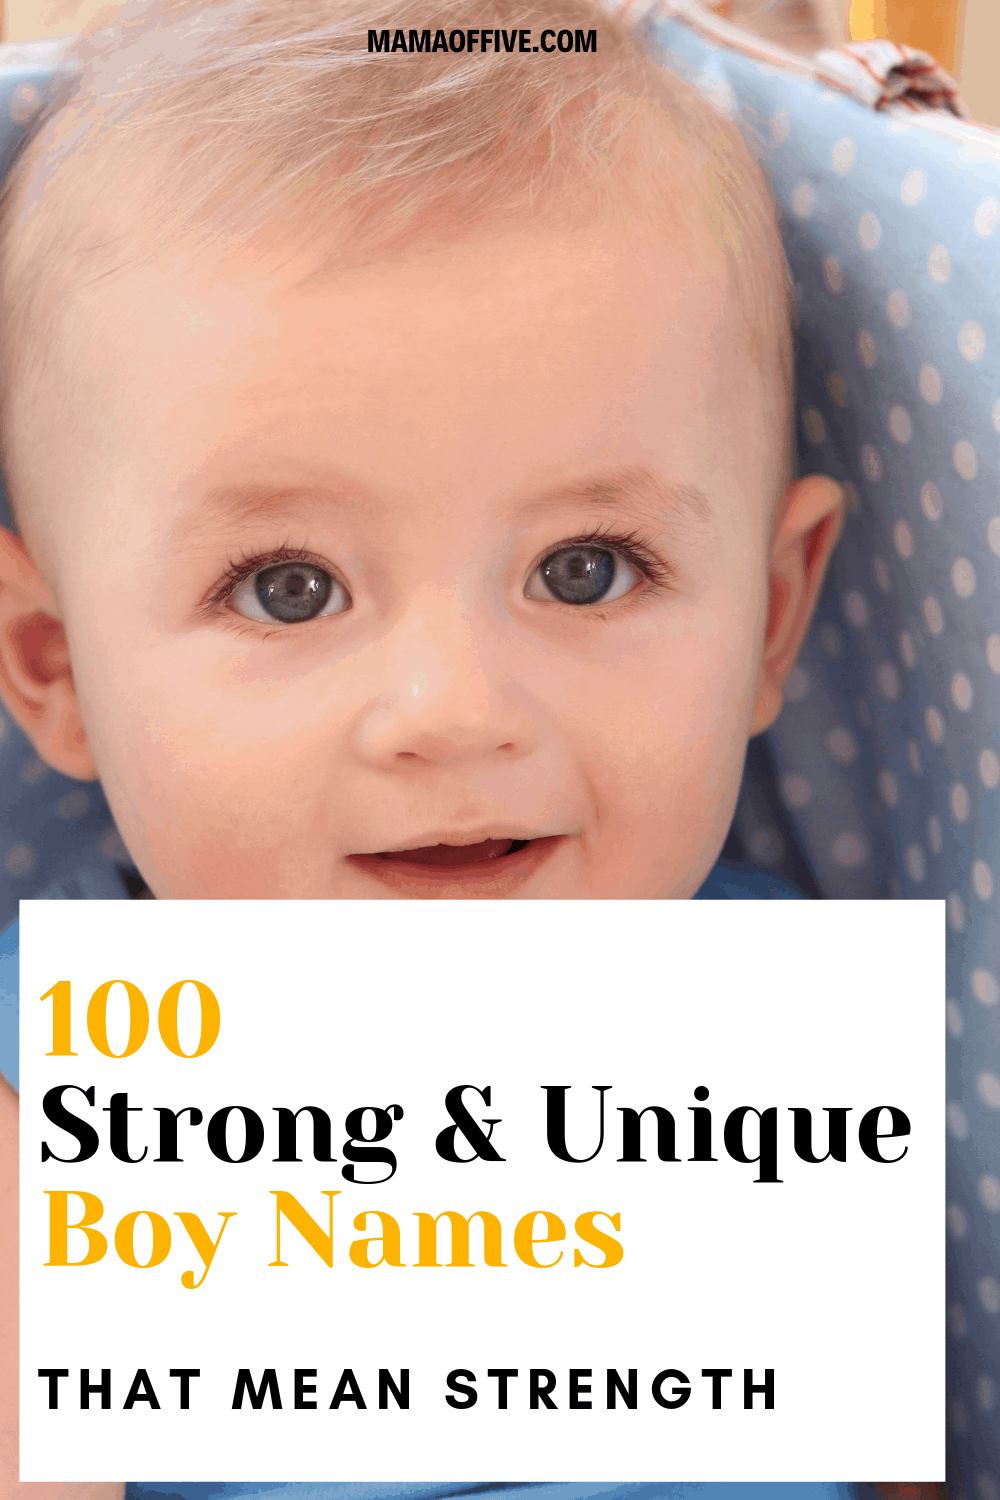 100 Unique Boys Names meaning Strength and Honor - Mama of Five